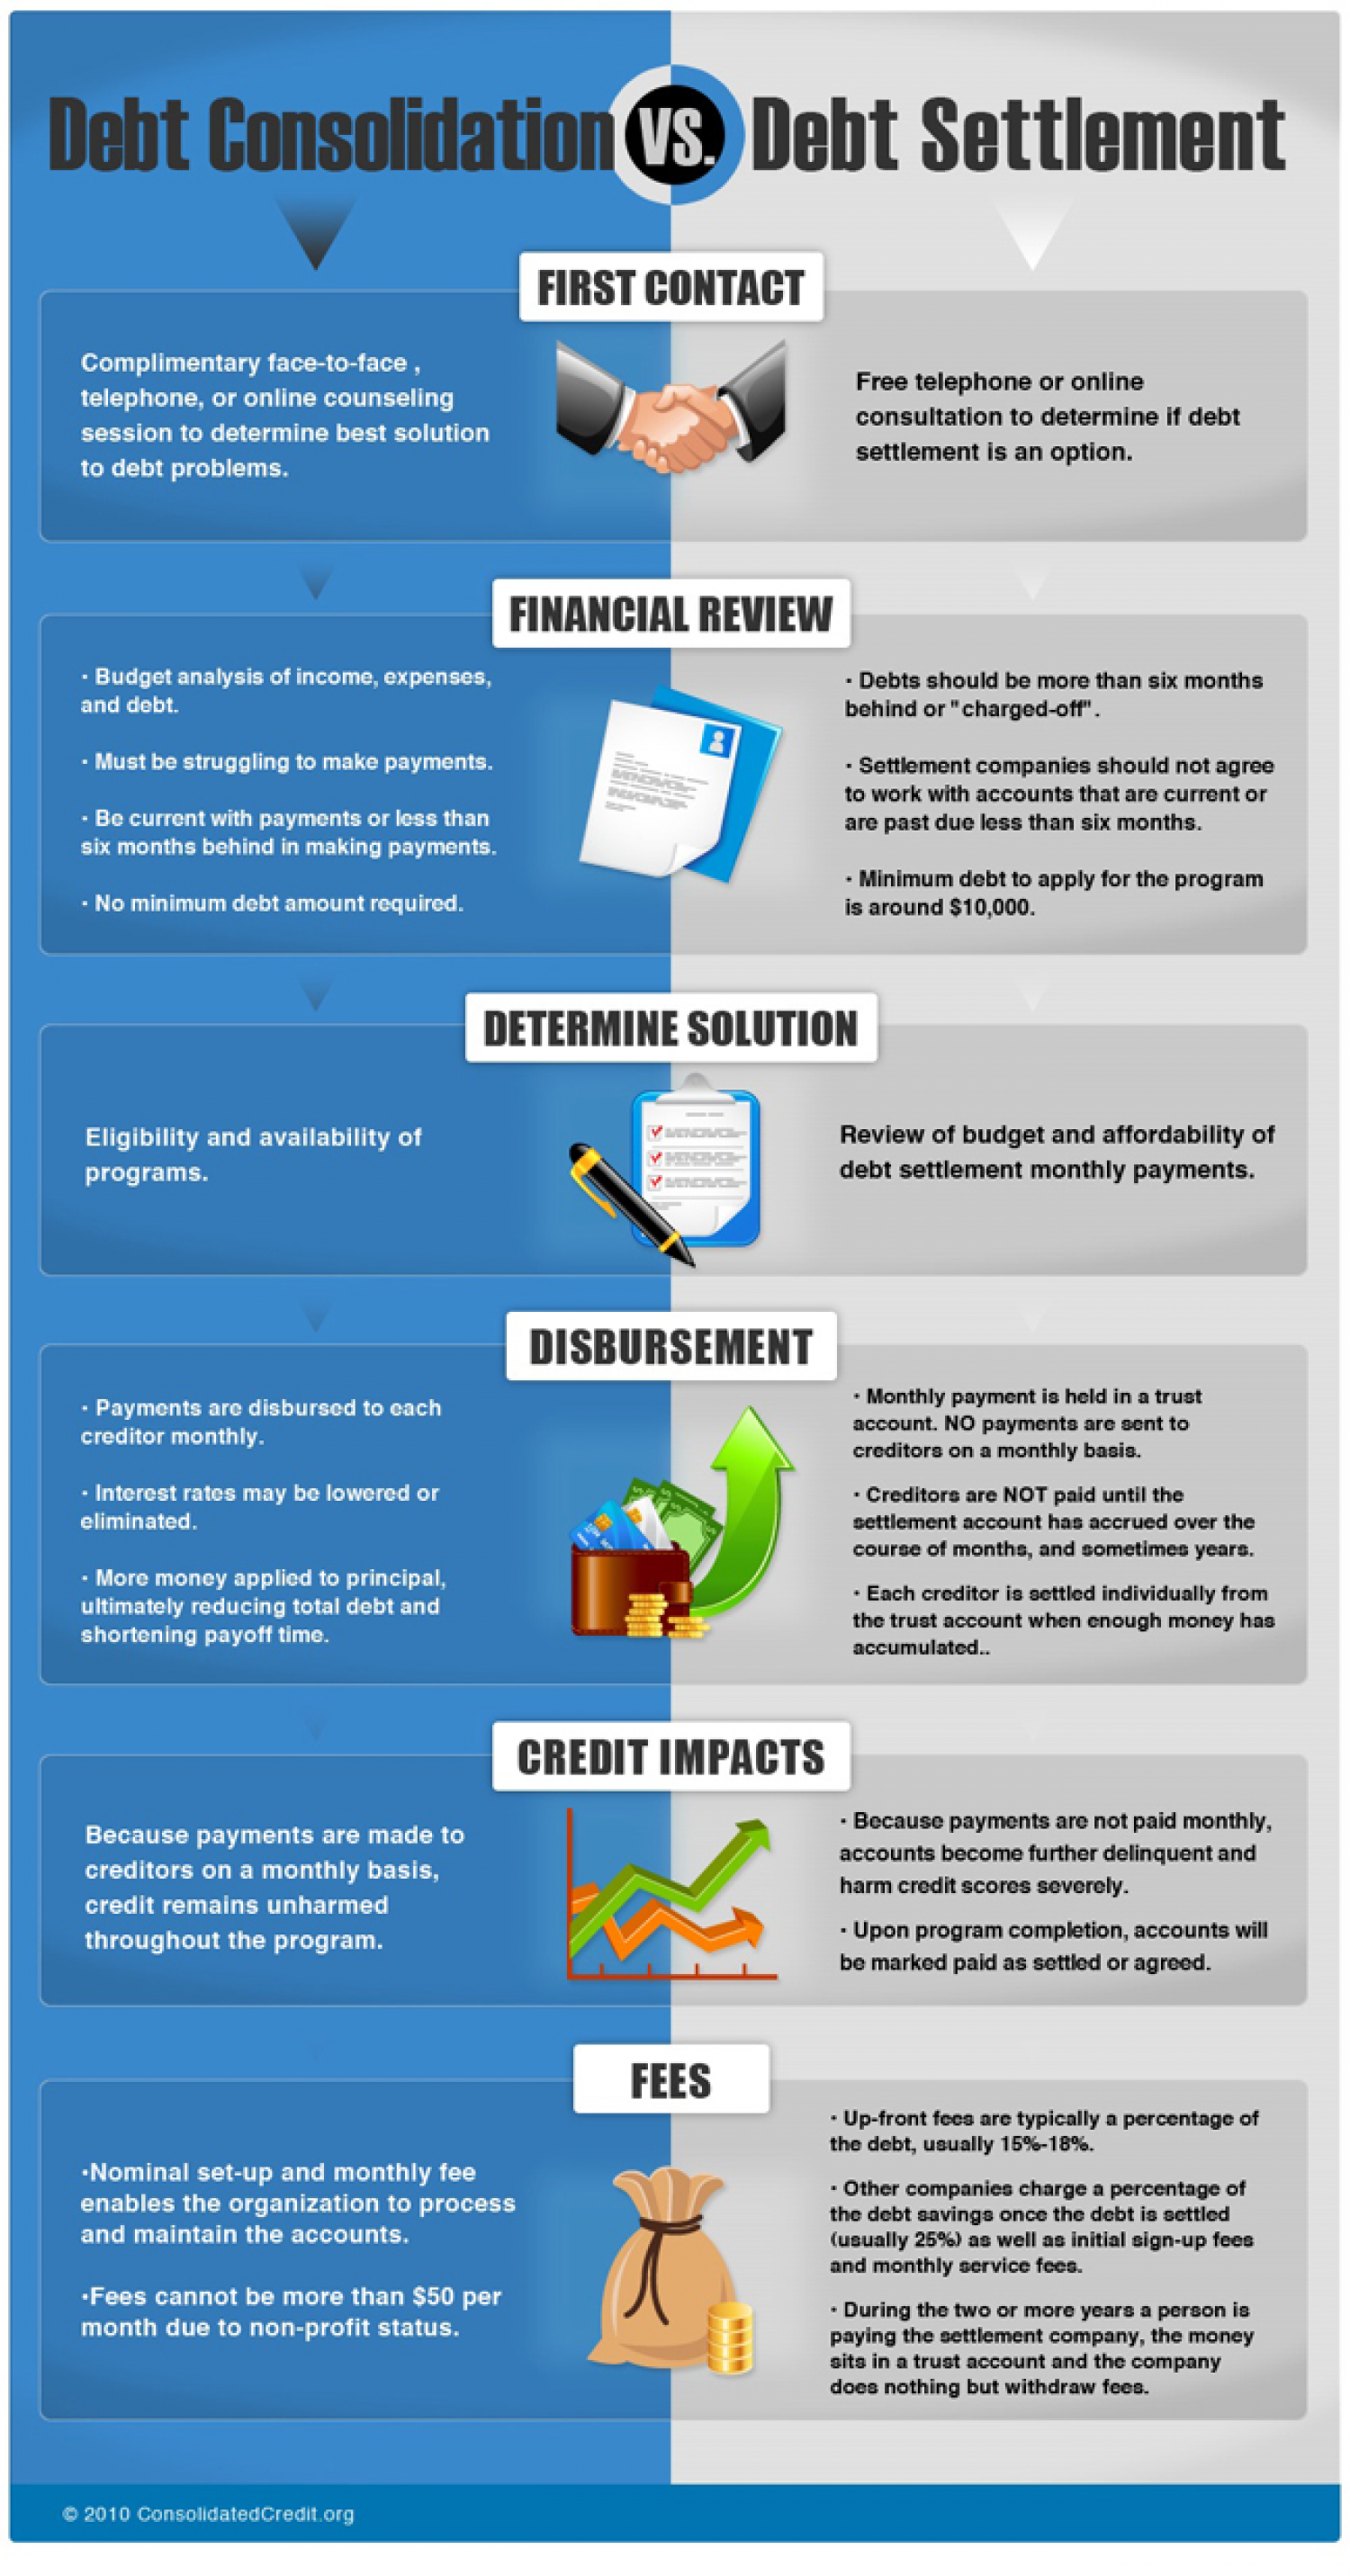 Debt Consolidation Vs Debt Settlement Infographic